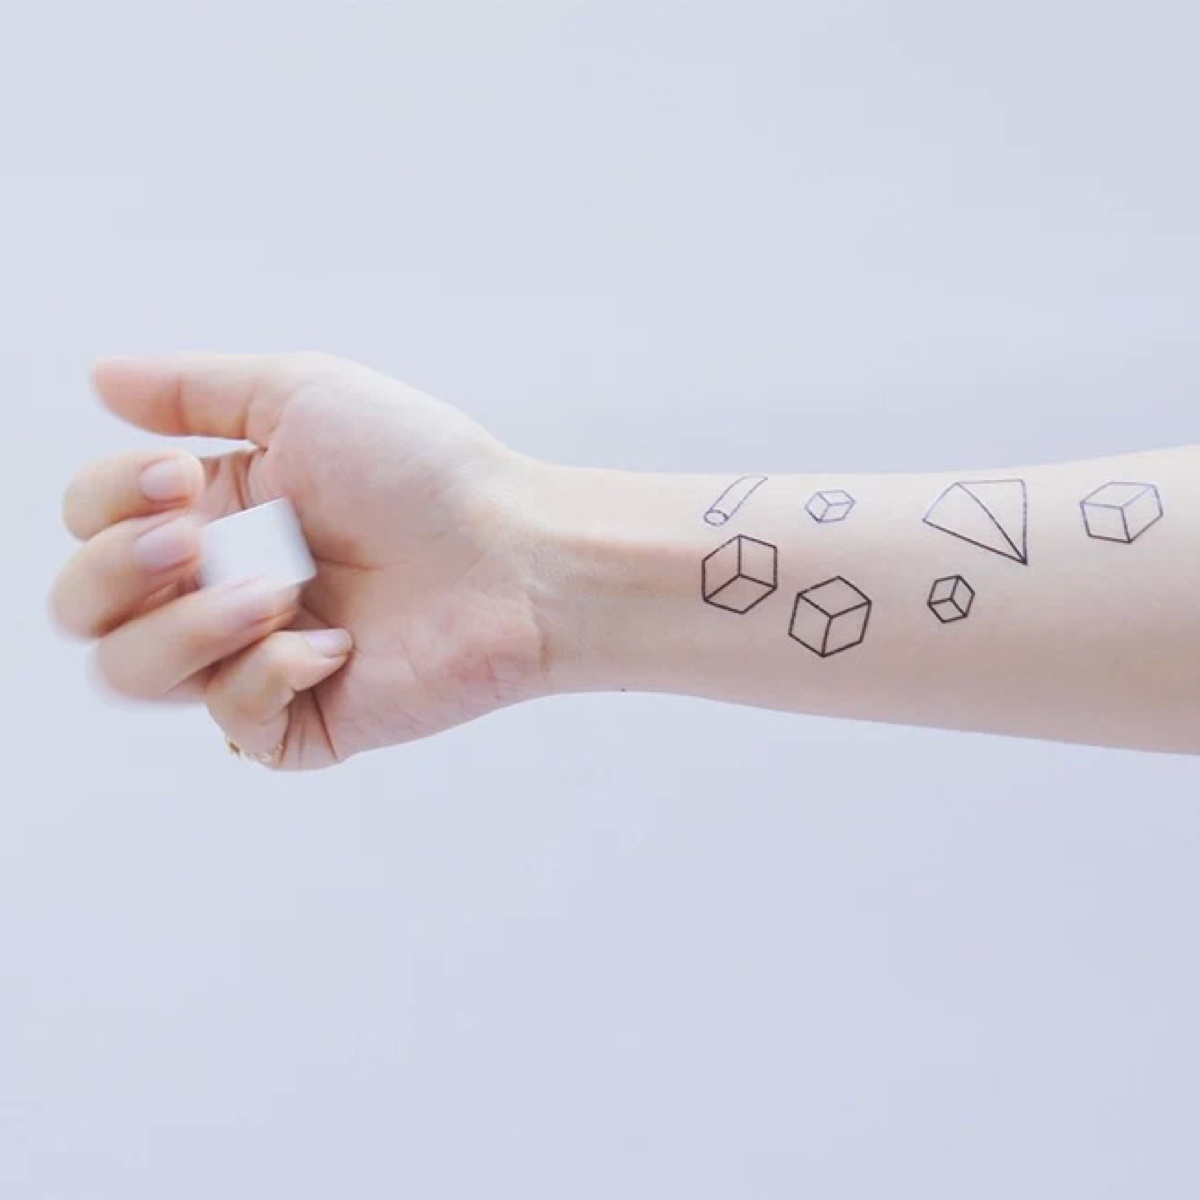 New Coming Non-Toxic Body Temporary Tattoos, Fashion Tattoo Sticker